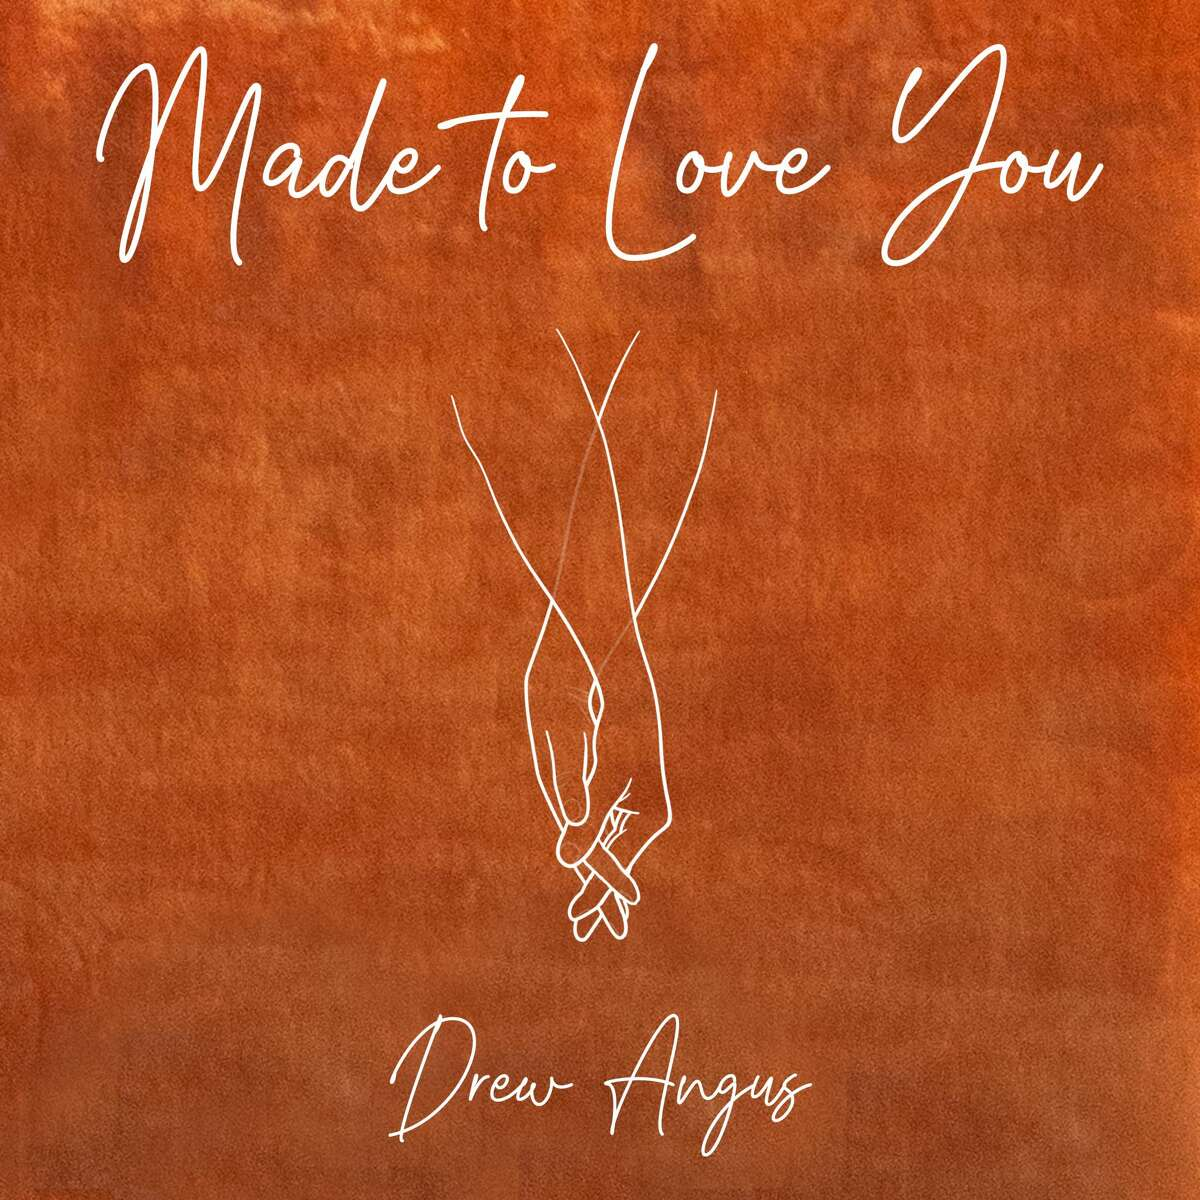 The cover for Drew Angus' latest single,